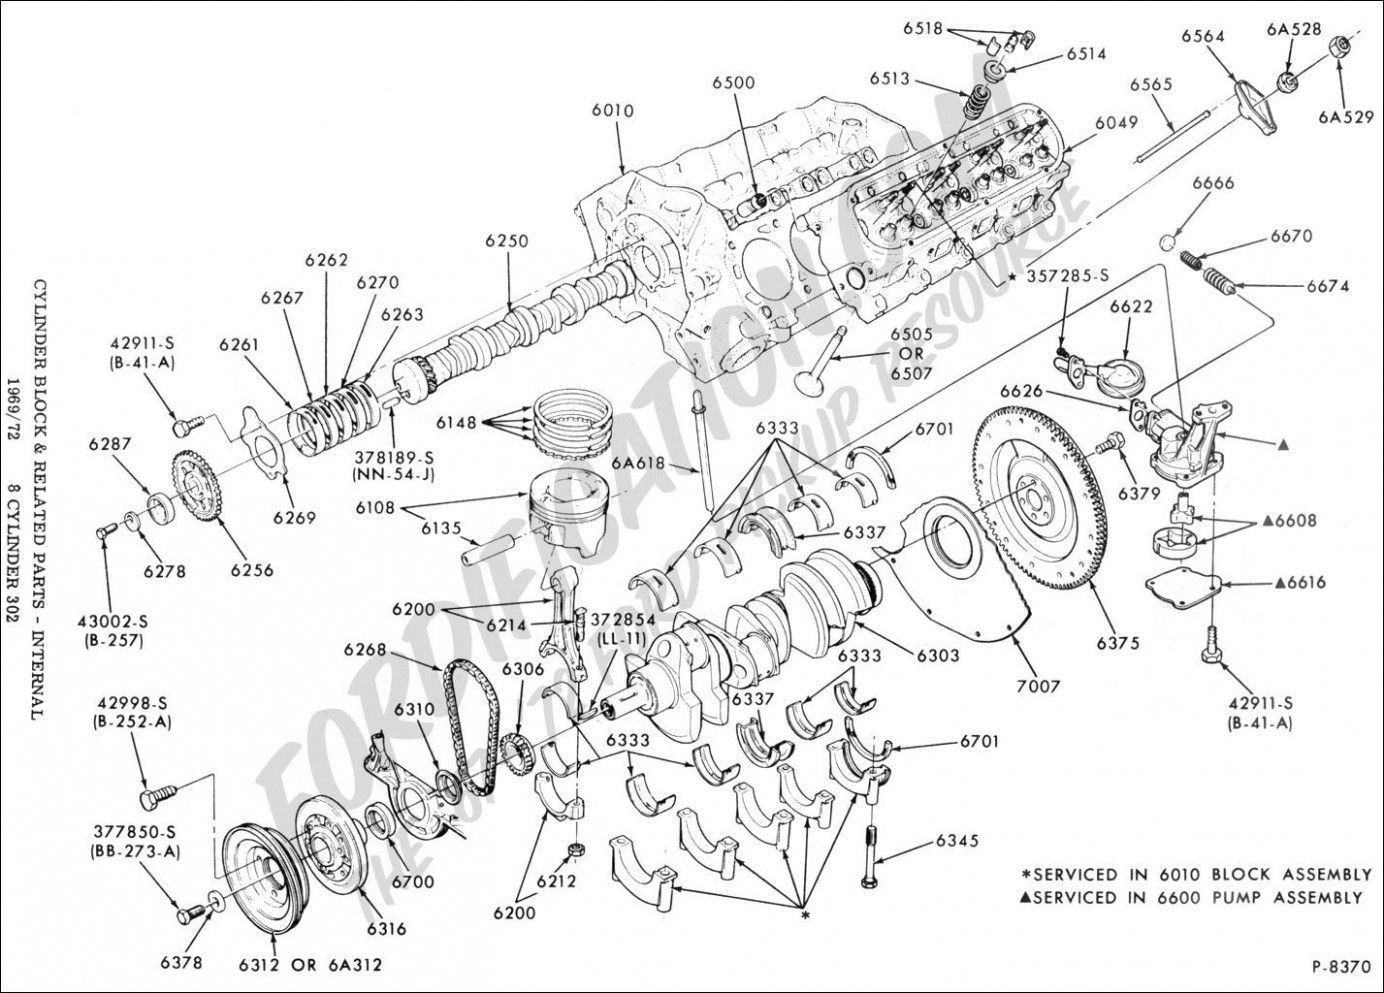 Engine Diagram And Parts List Engine Diagram And Parts List